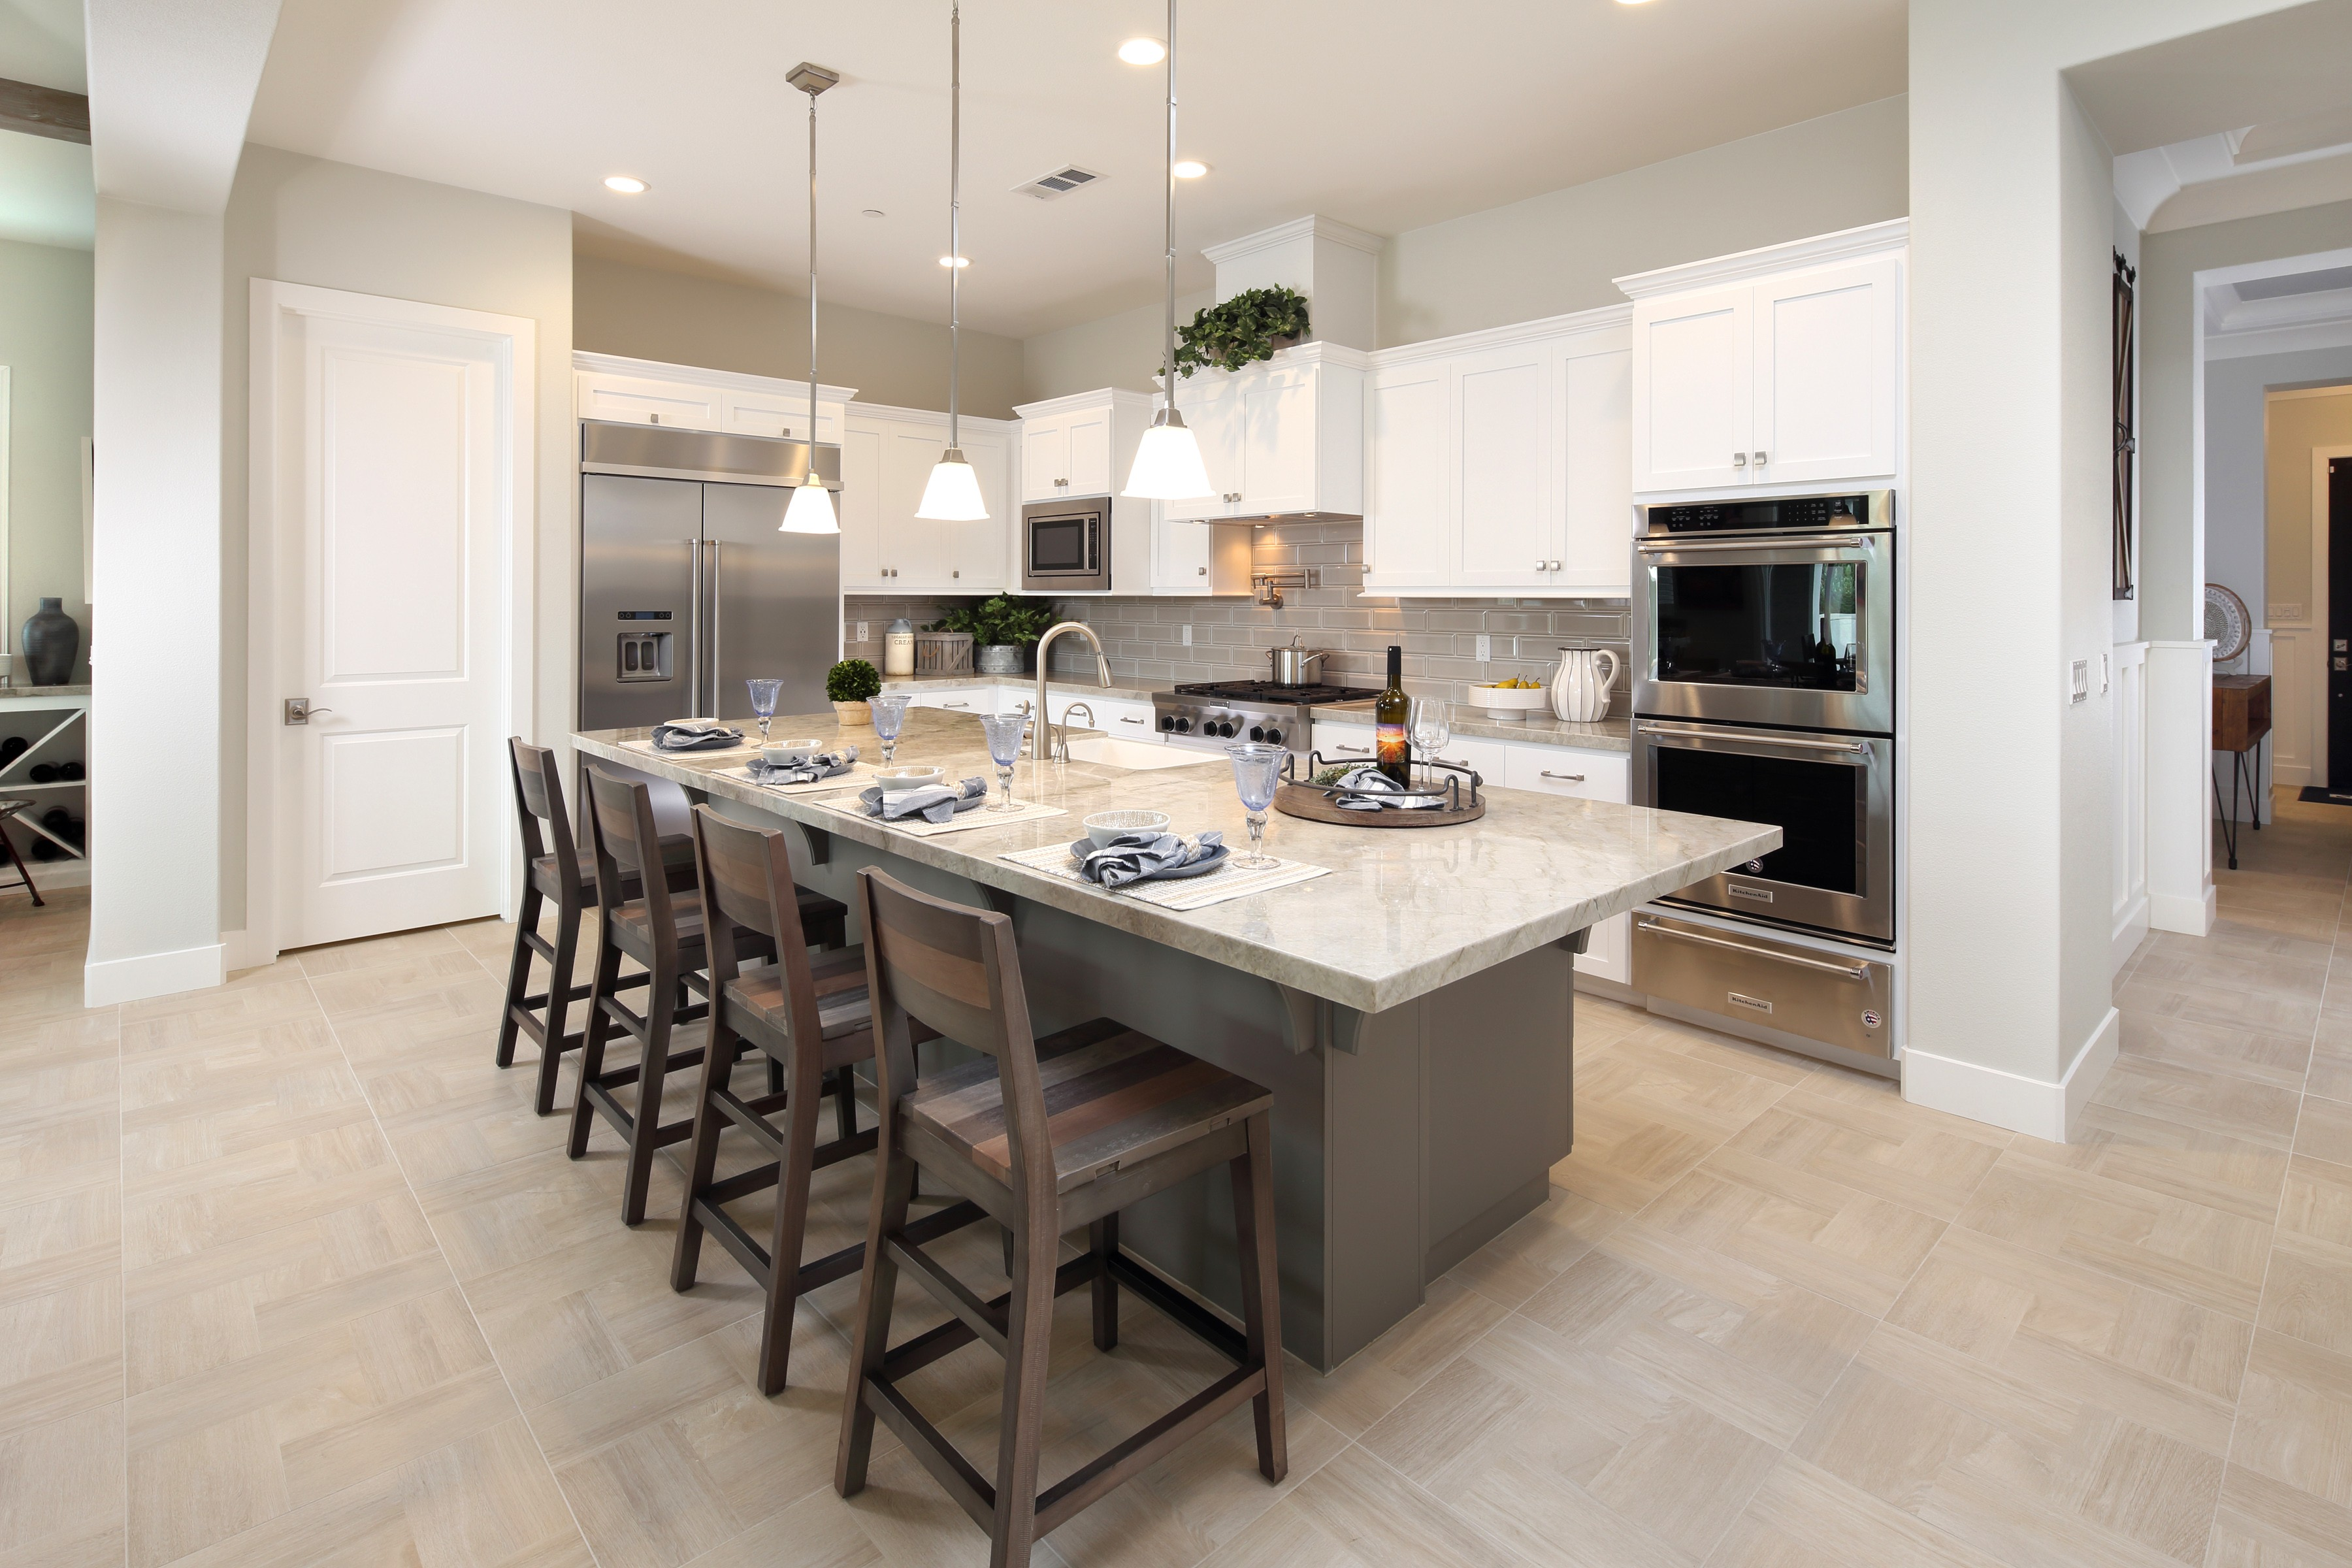 Cabinets and countertop   Elite Builder Services